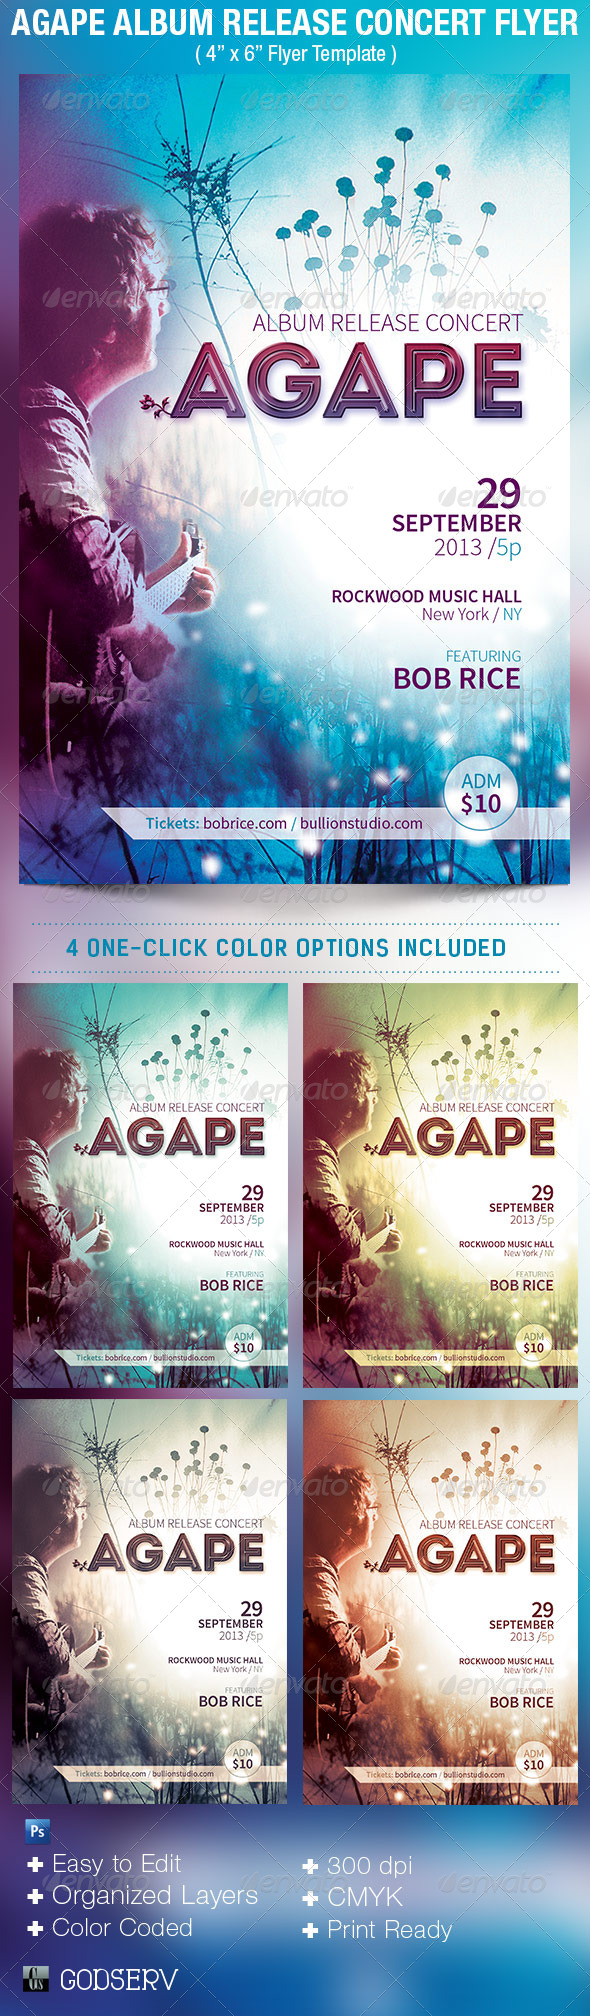 Agape Album Release Concert Flyer Template  - Concerts Events